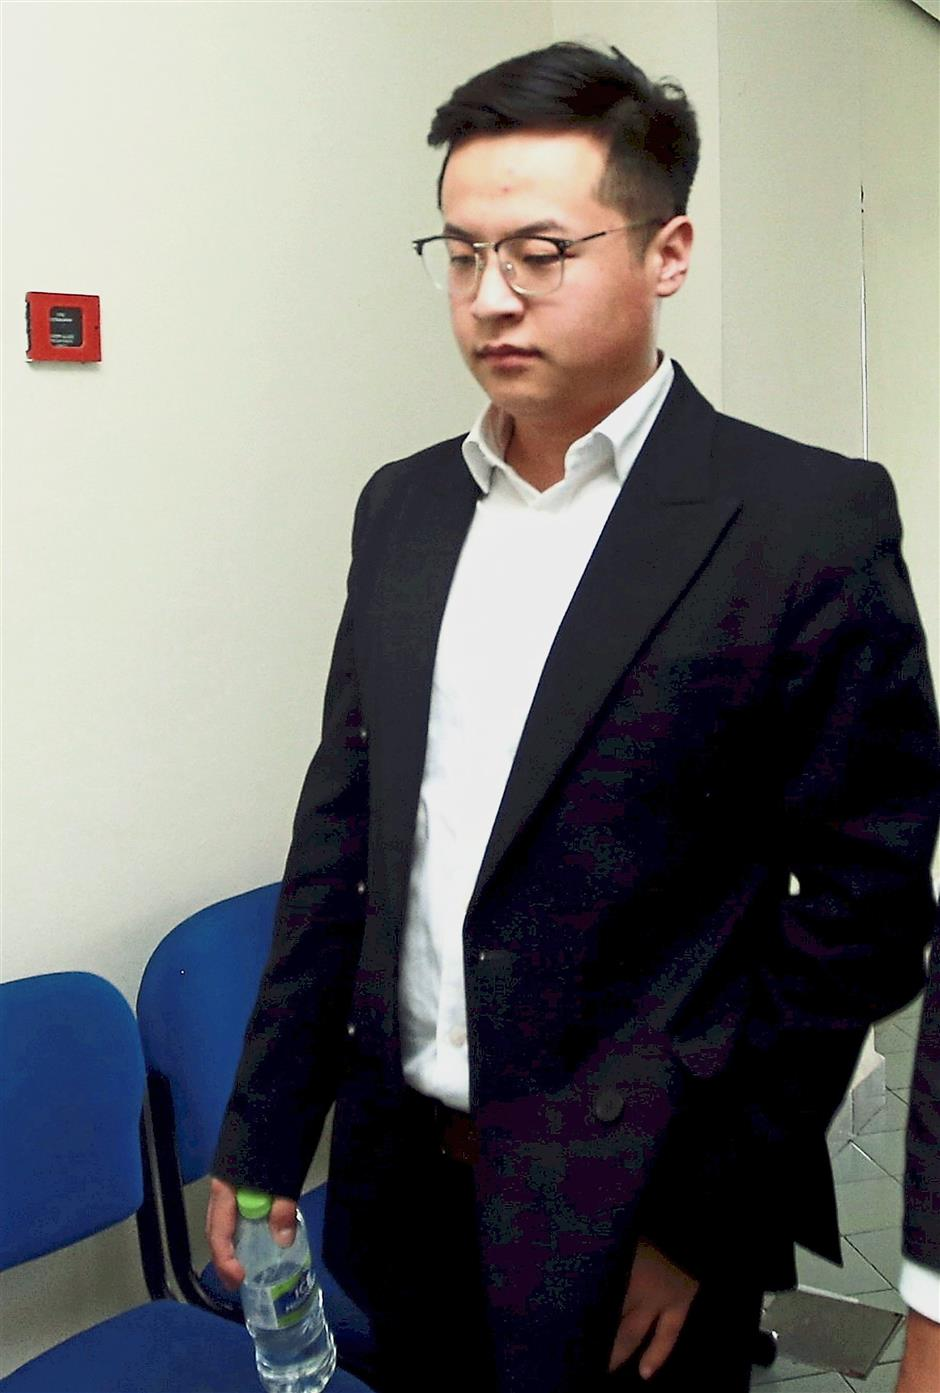 Bayarkhuu Bayarjargal, 21, who told a civil suit hearing at the High Court here on Wednesday (Jan 30, 2019) that he changed his name from Mungunshagai Bayarjargal, after his mum Altantuya Shaariibuu died. He was nine then.